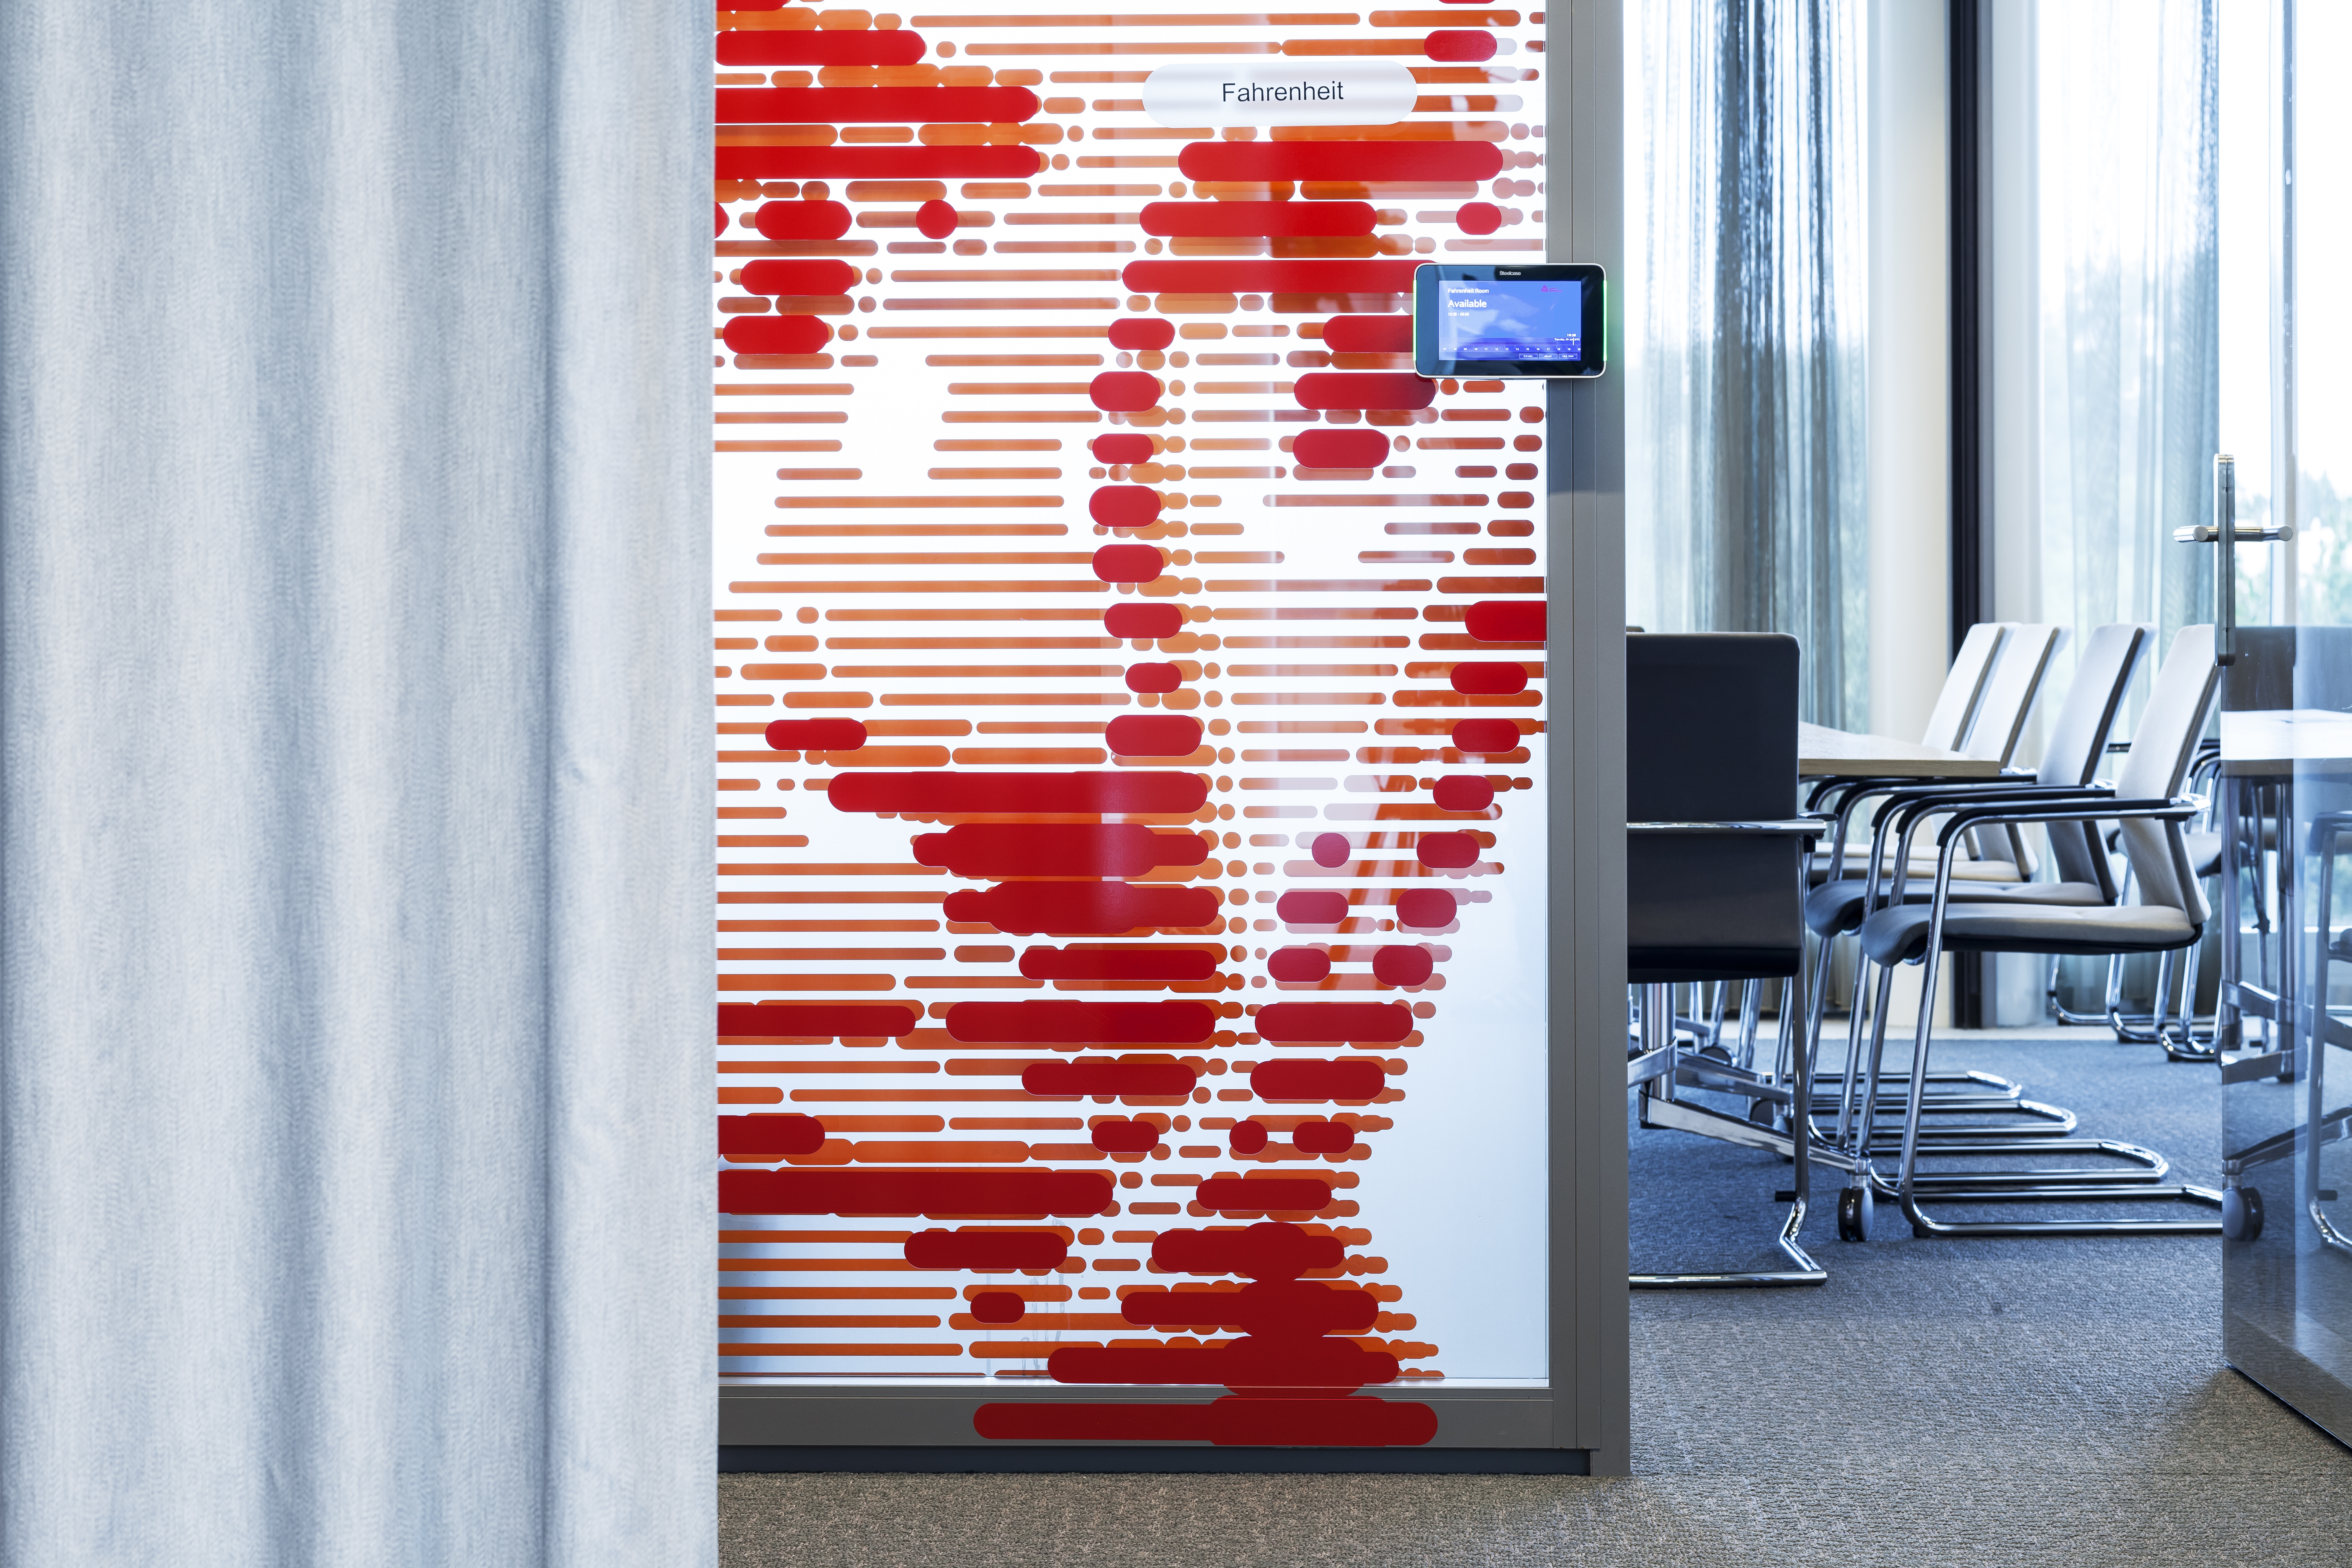 Photo Avery Dennison Graphic system label look Portrait of dotted lines on glass wall